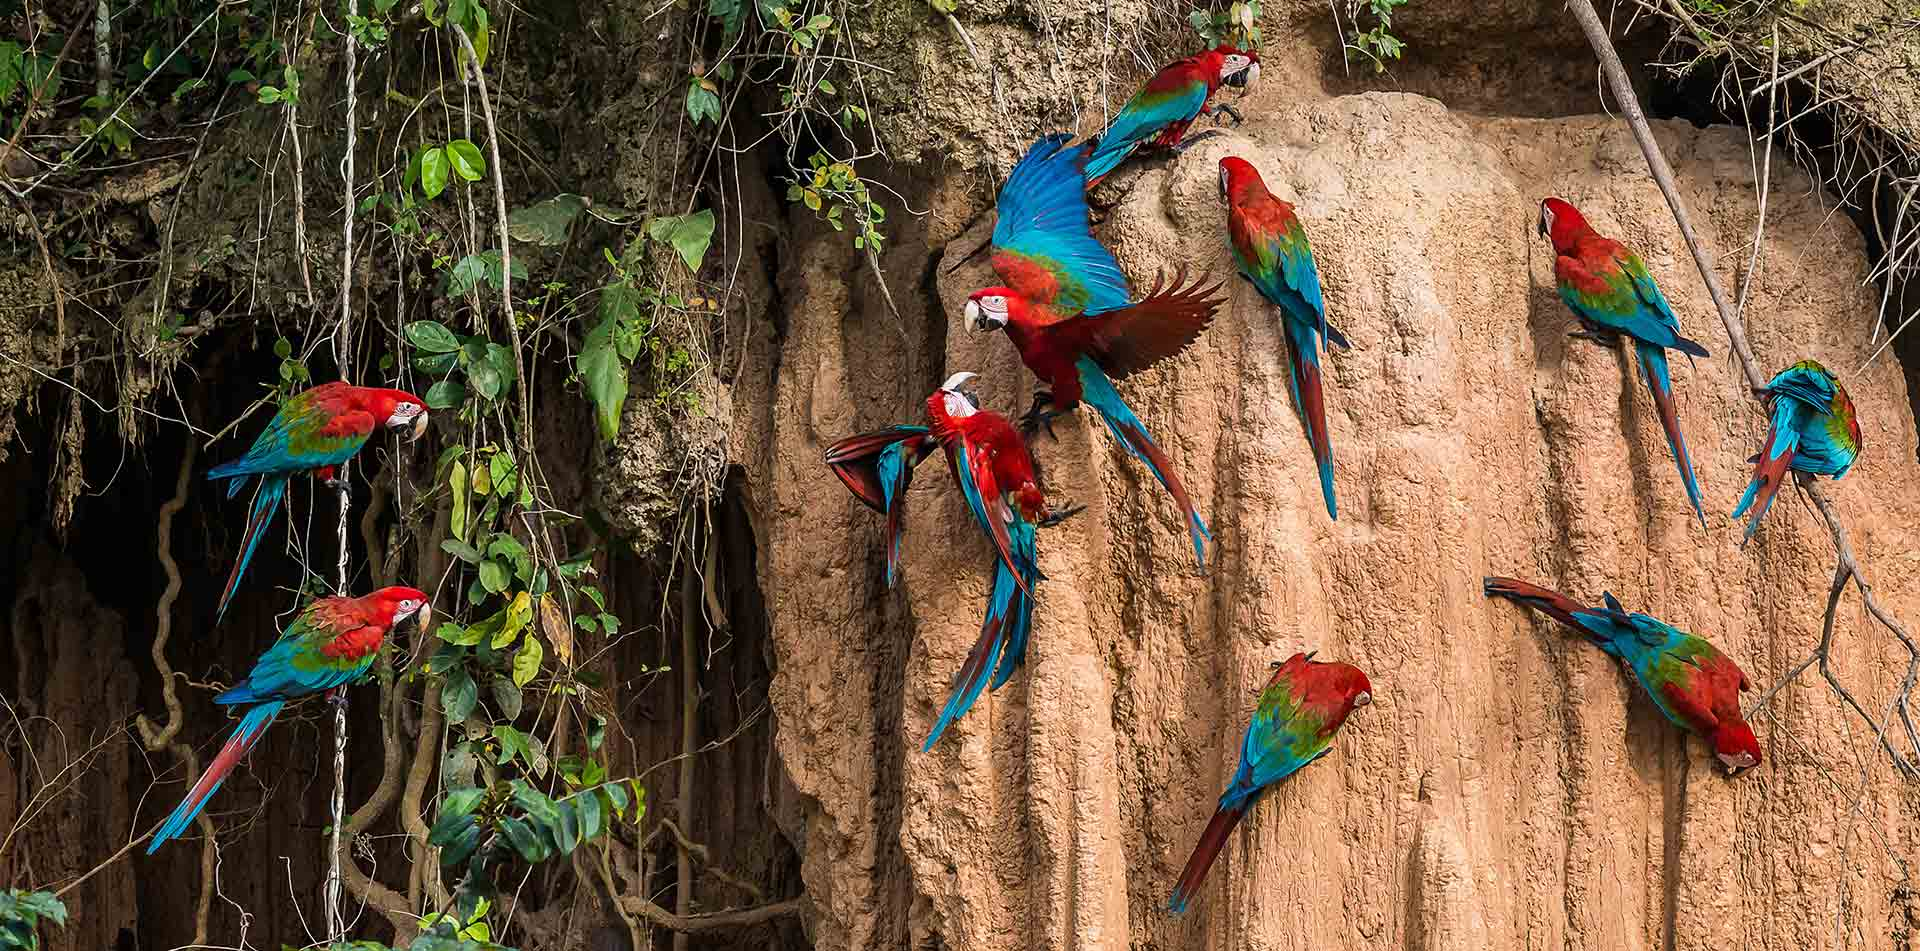 South America Peru scarlet macaws flocking in the Peruvian Amazon rainforest - luxury vacation destinations